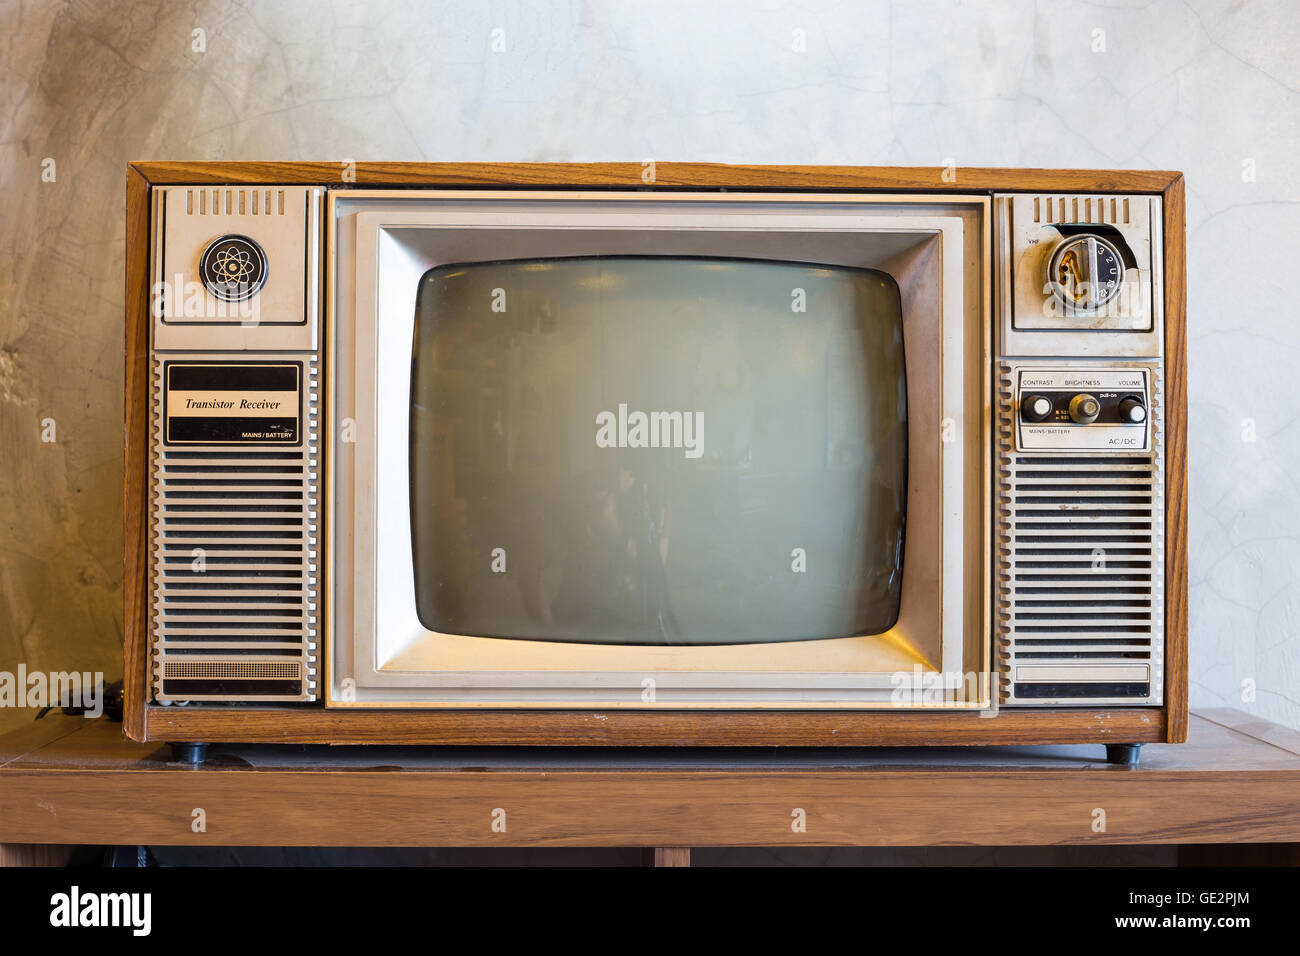 retro tv with wooden case in room with vintage wallpaper. Black Bedroom Furniture Sets. Home Design Ideas